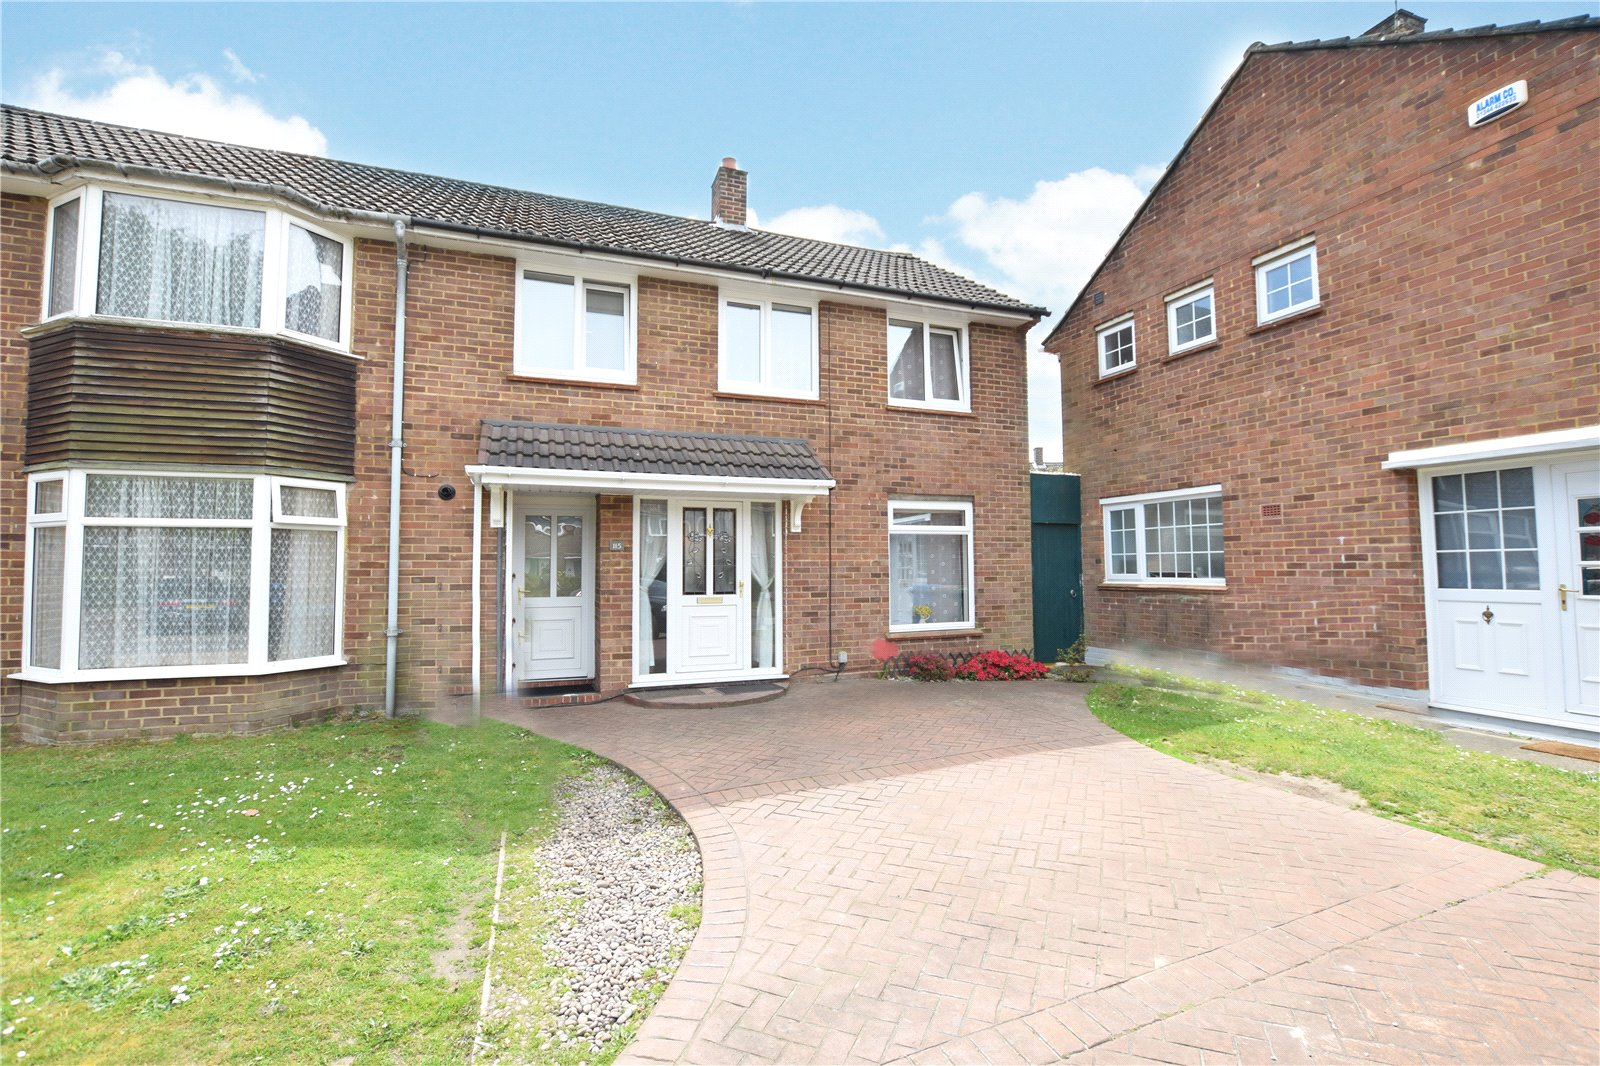 3 Bedrooms Terraced House for sale in Calfridus Way, Bracknell, Berkshire, RG12